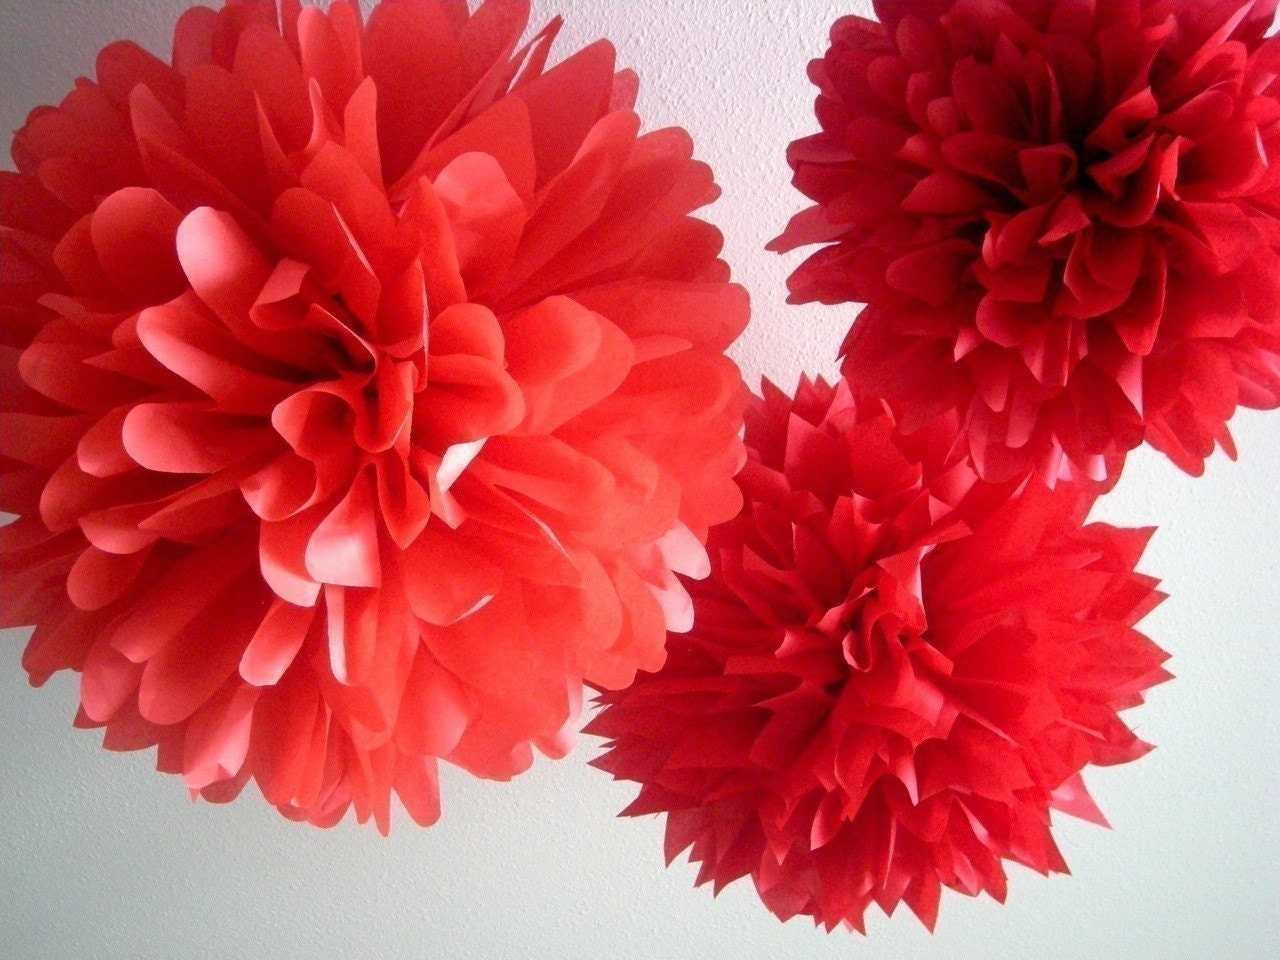 Red Riding Hood ... 3 tissue paper poms // wedding decorations // birthdays // holidays // eco party decorations